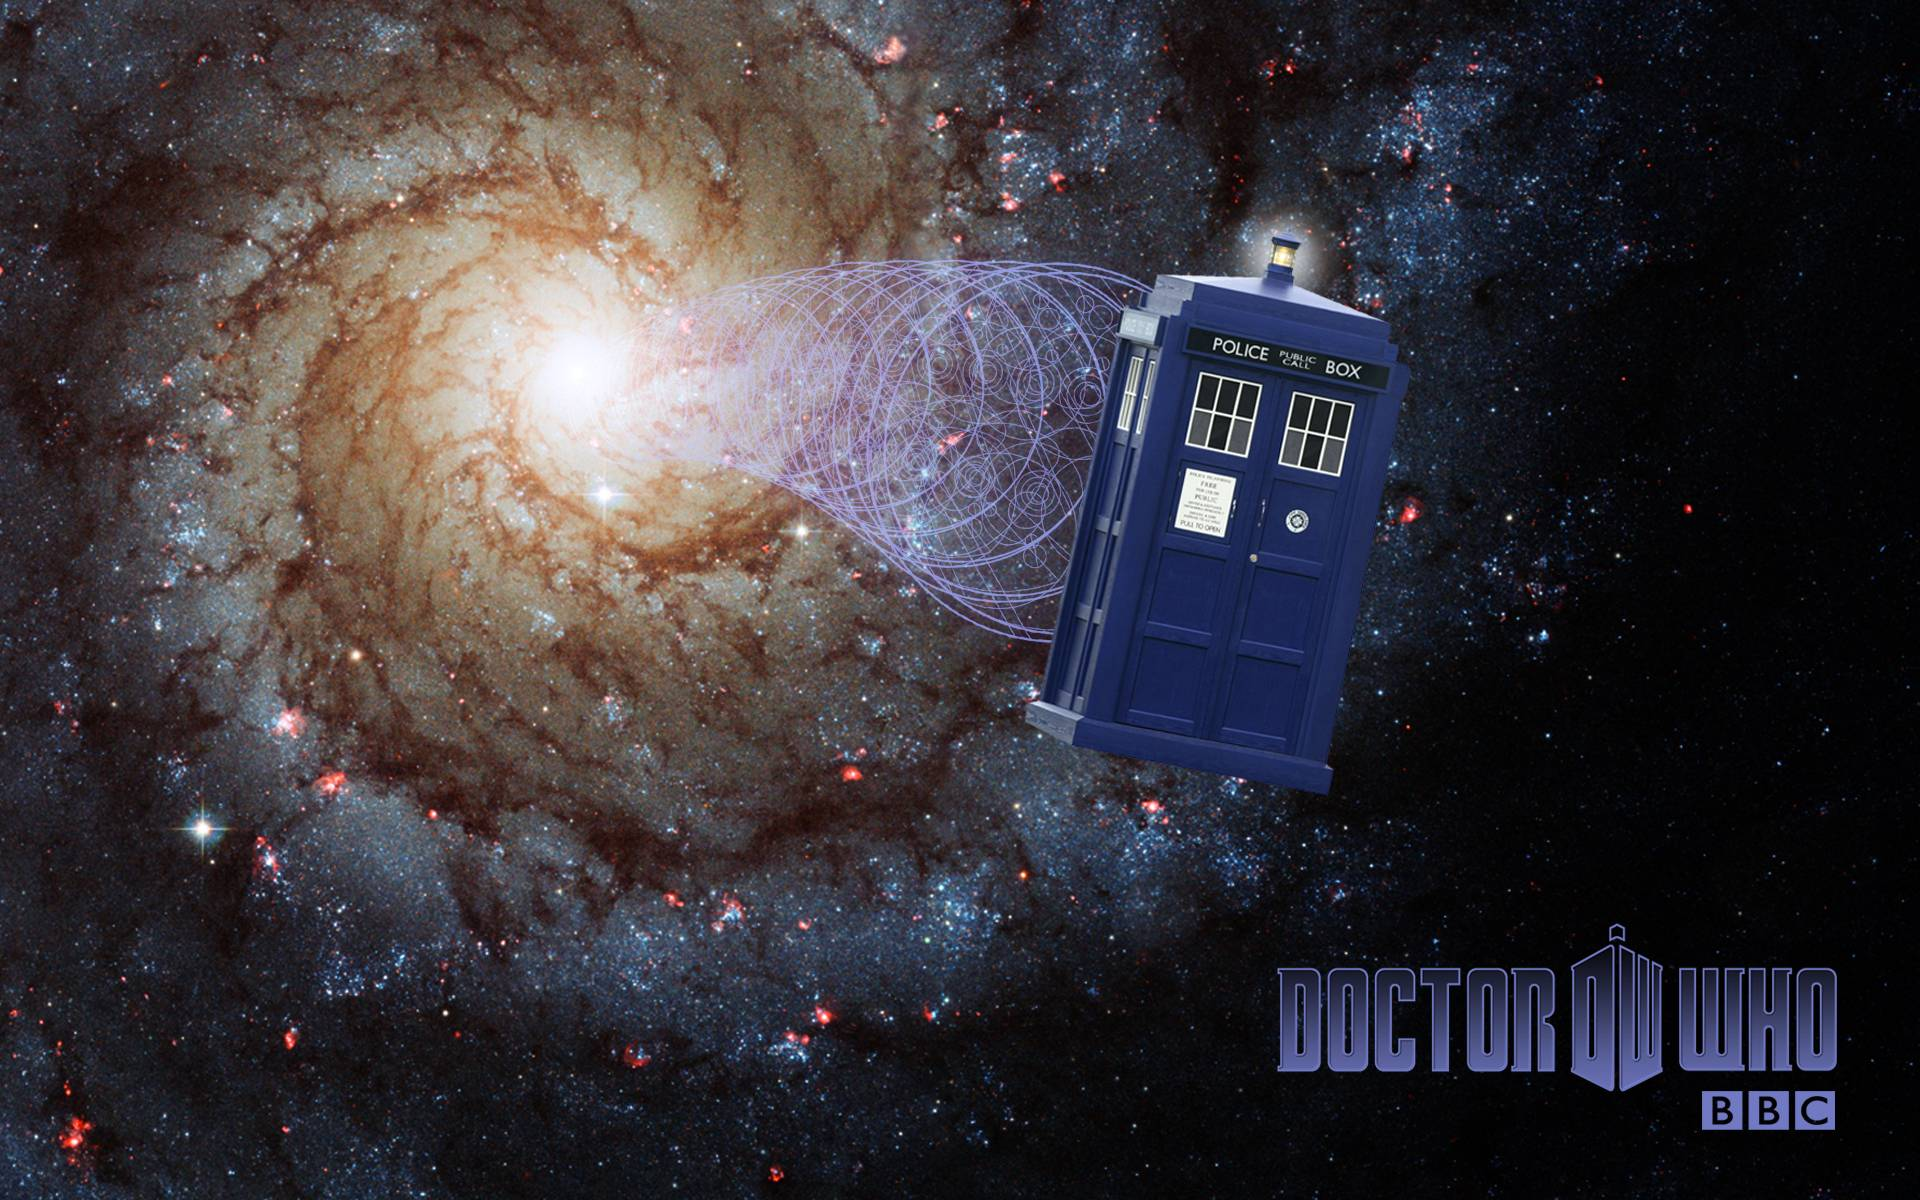 Doctor Who Wallpapers Tardis Doctor Who Wallpaper Hd Free